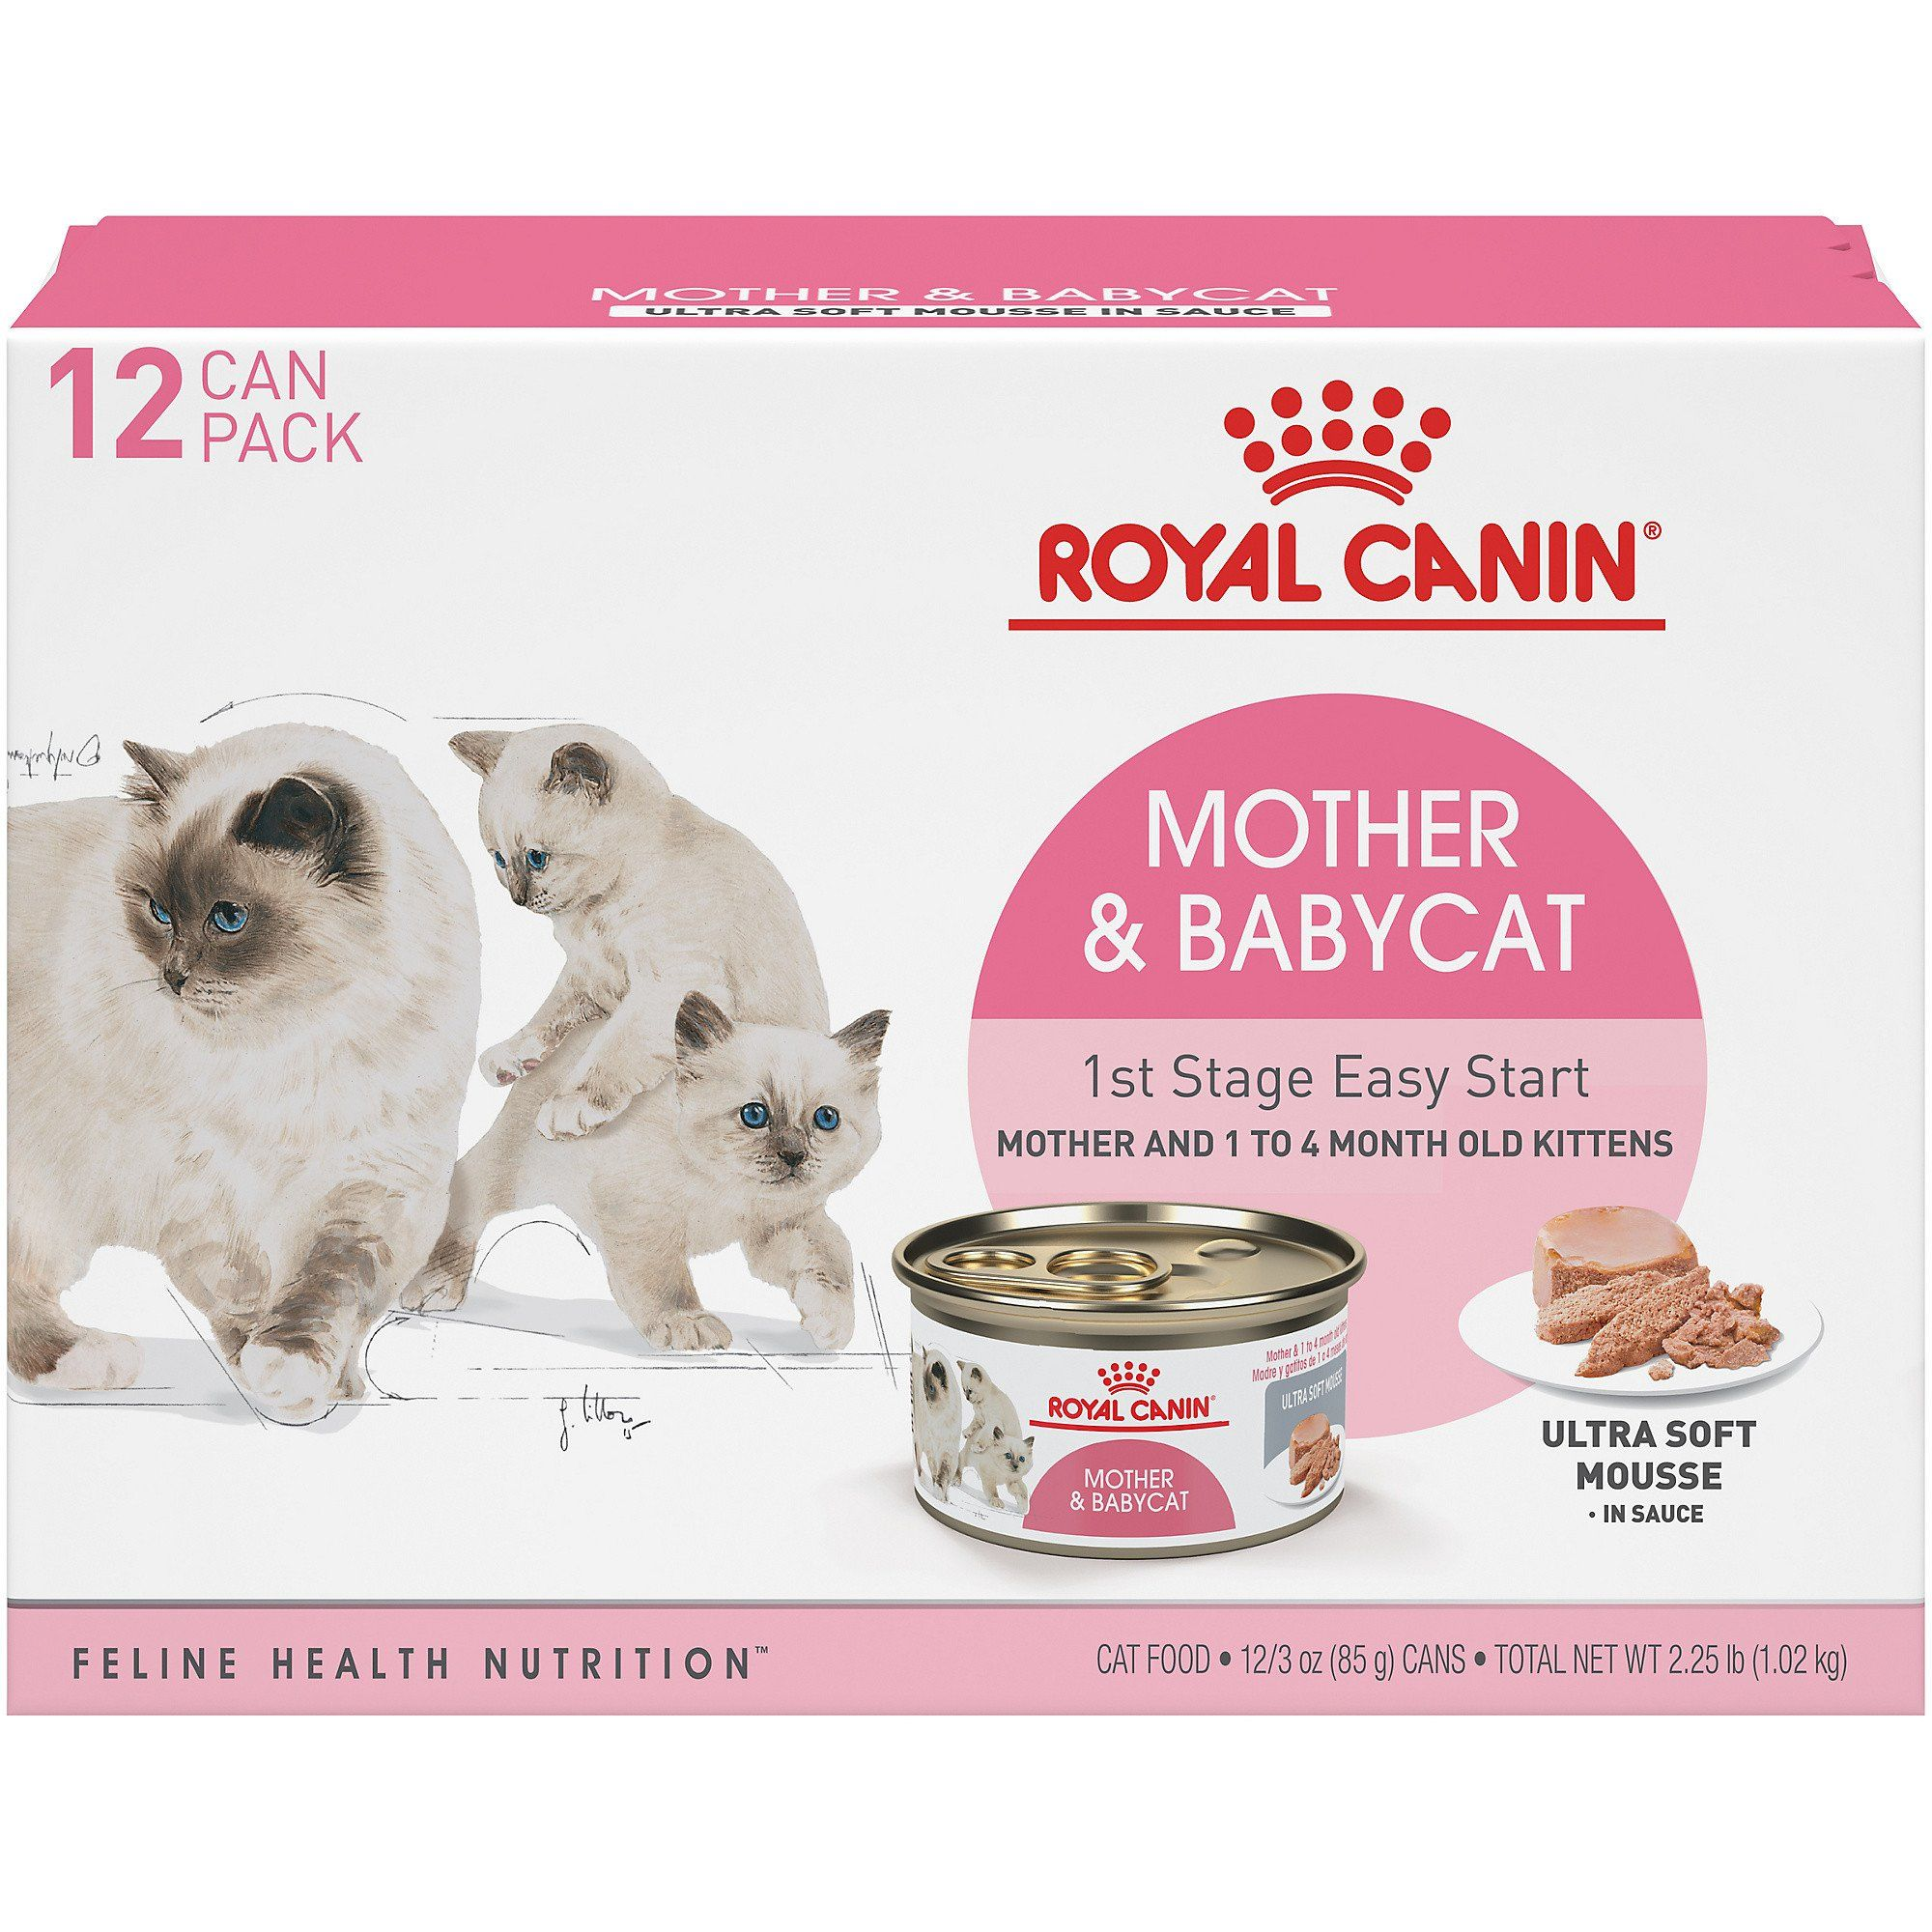 Royal Canin Mother & Babycat UltraSoft Mousse in Sauce